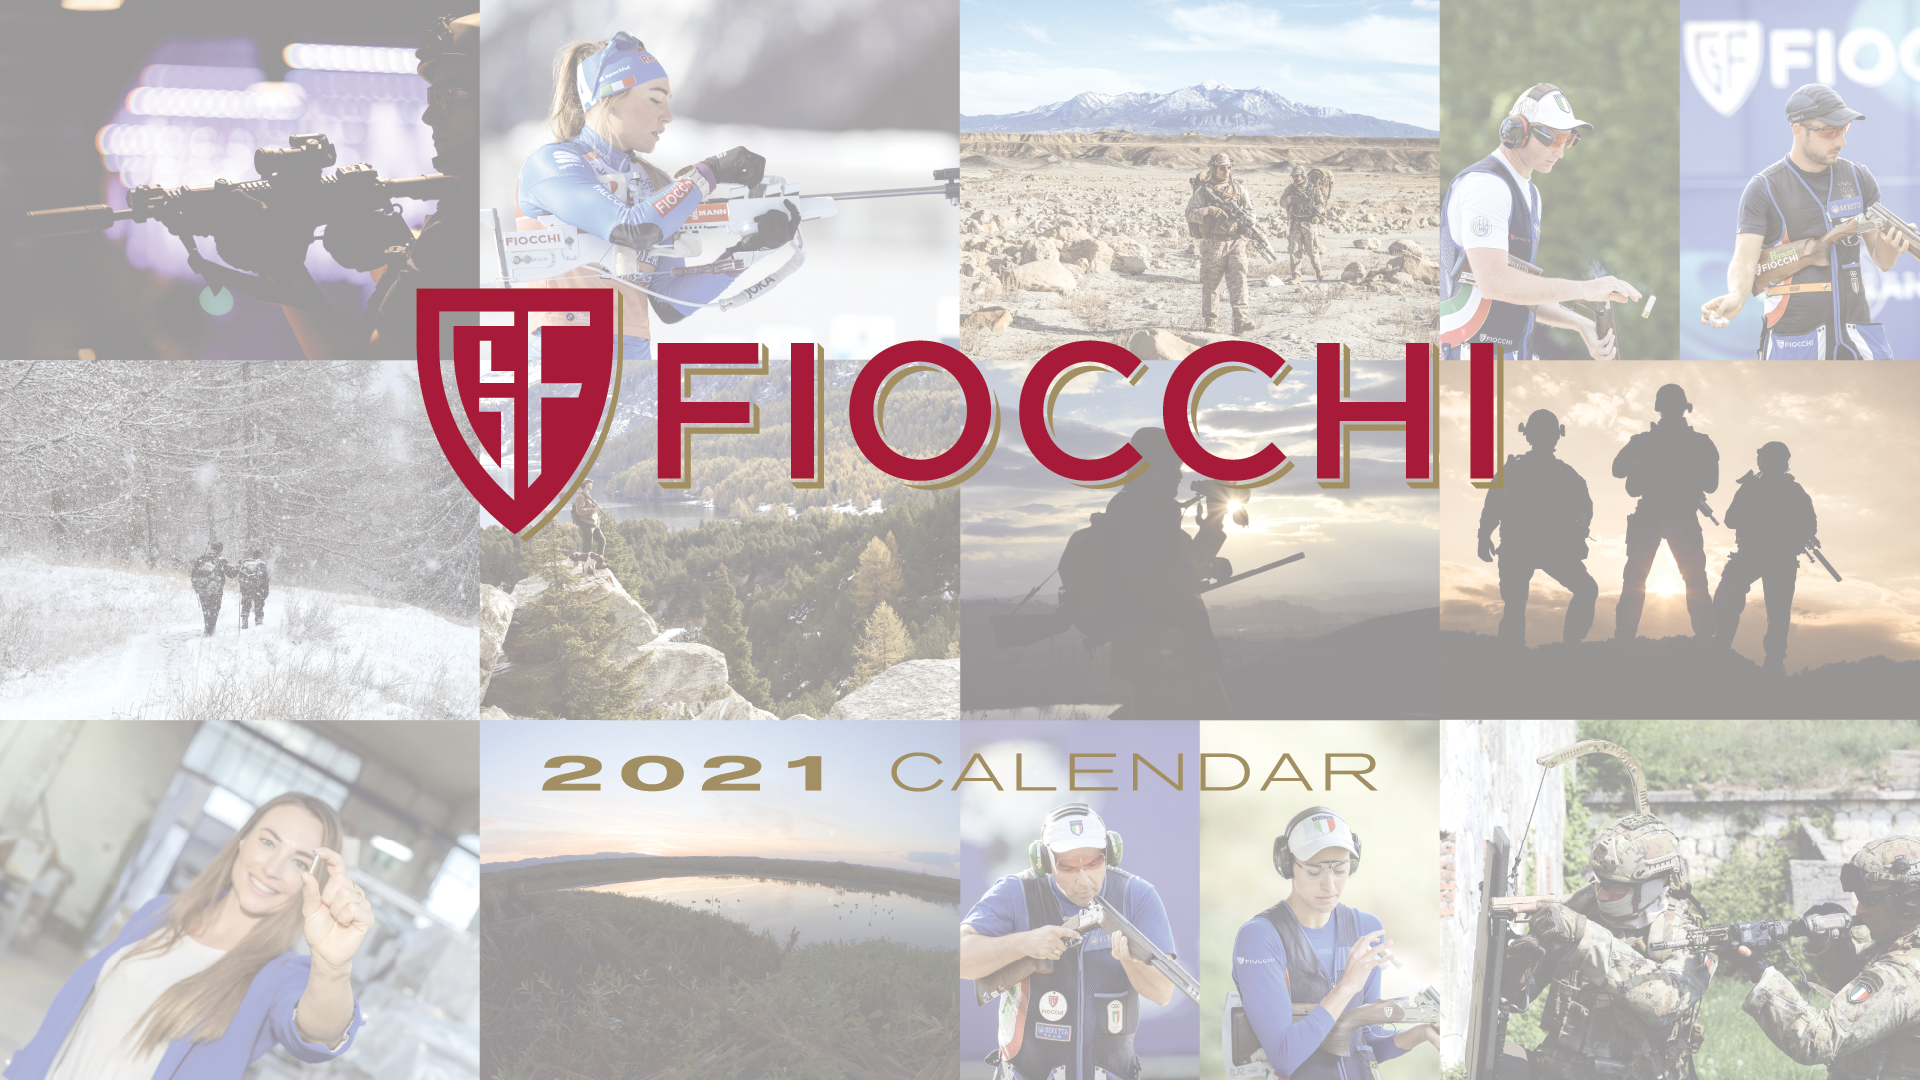 THE FIOCCHI 2021 CALENDAR PRESENTED